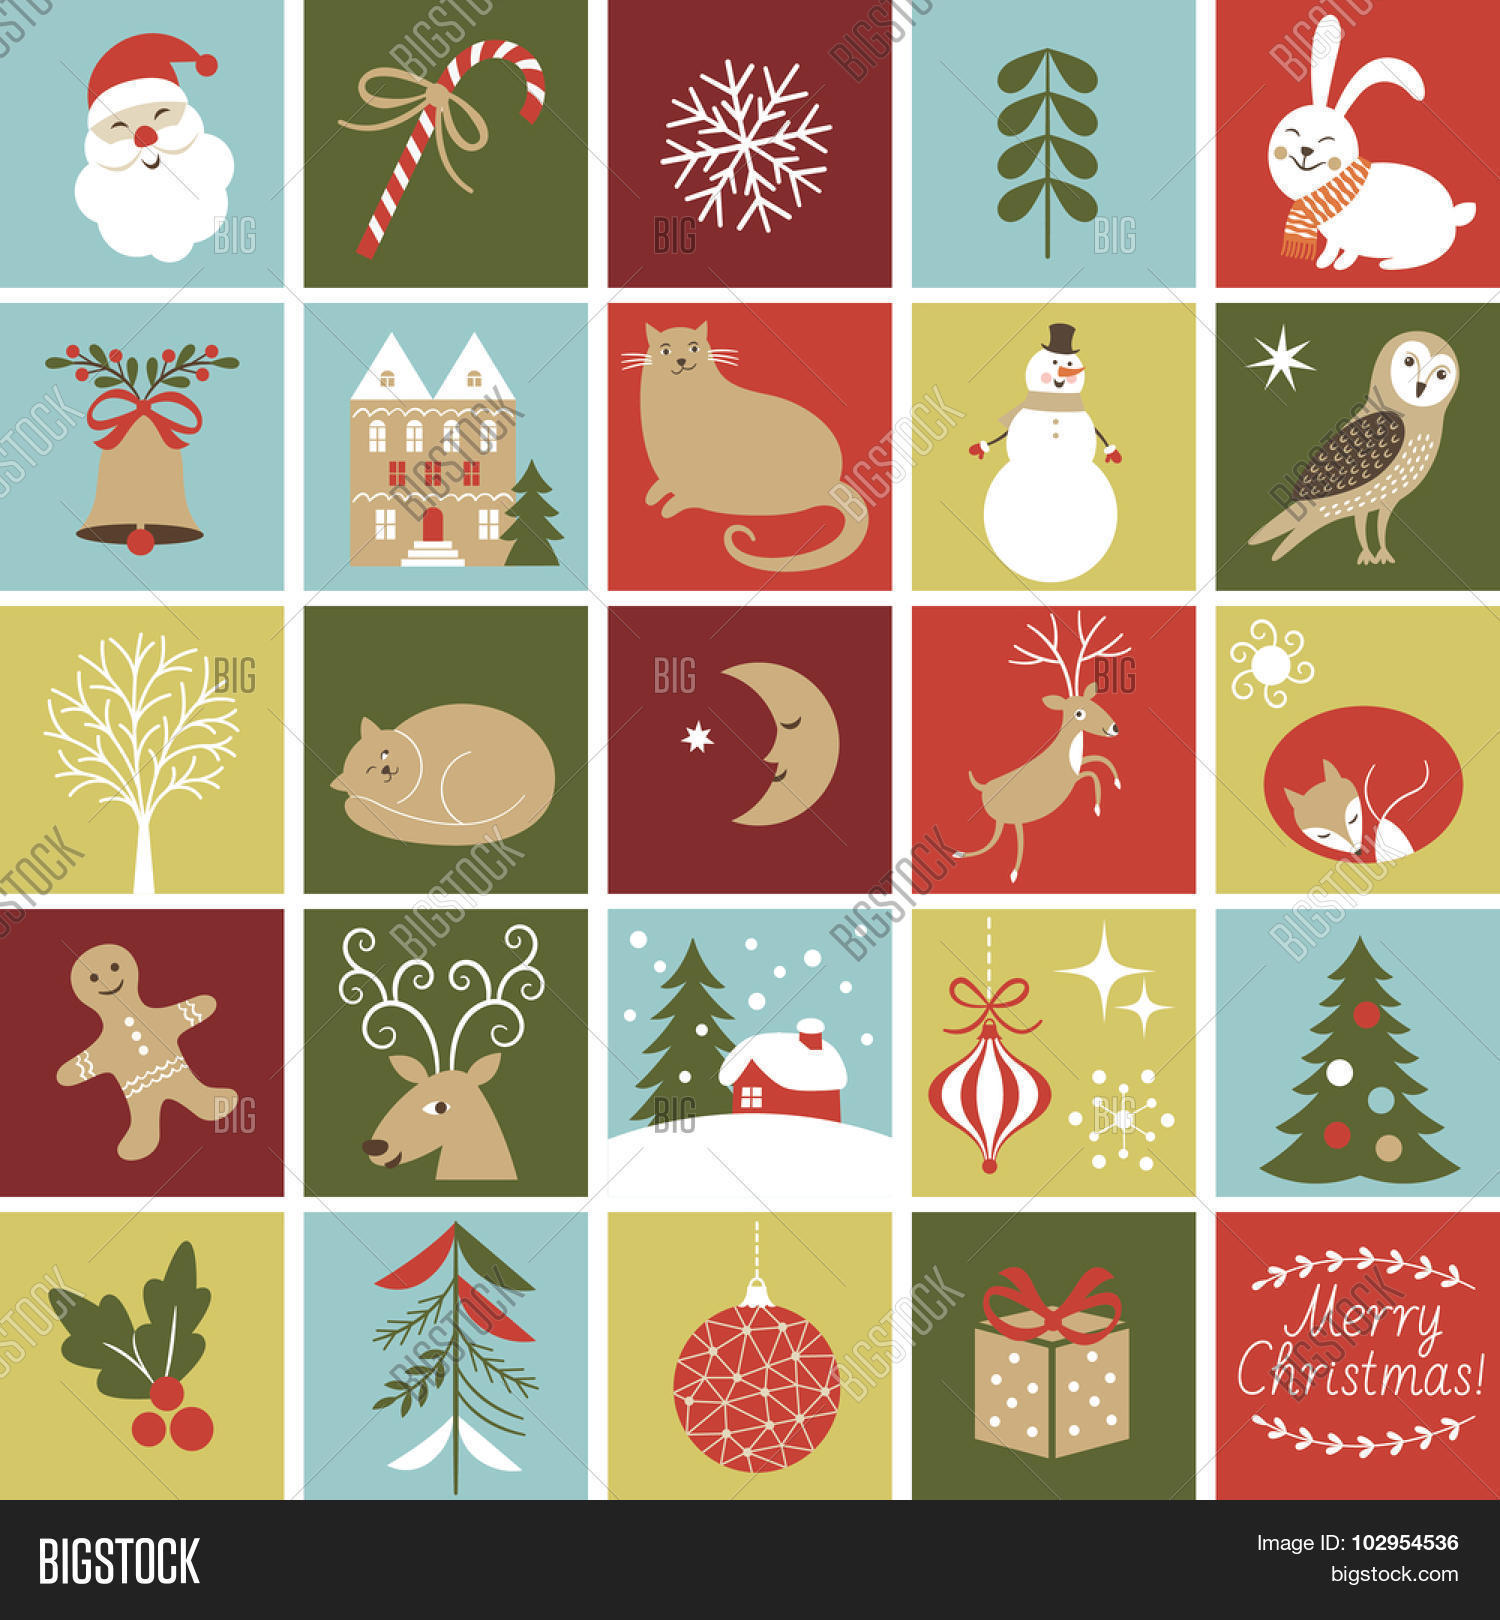 Christmas Calendar Illustration : Set icons create advent calendar vector photo bigstock